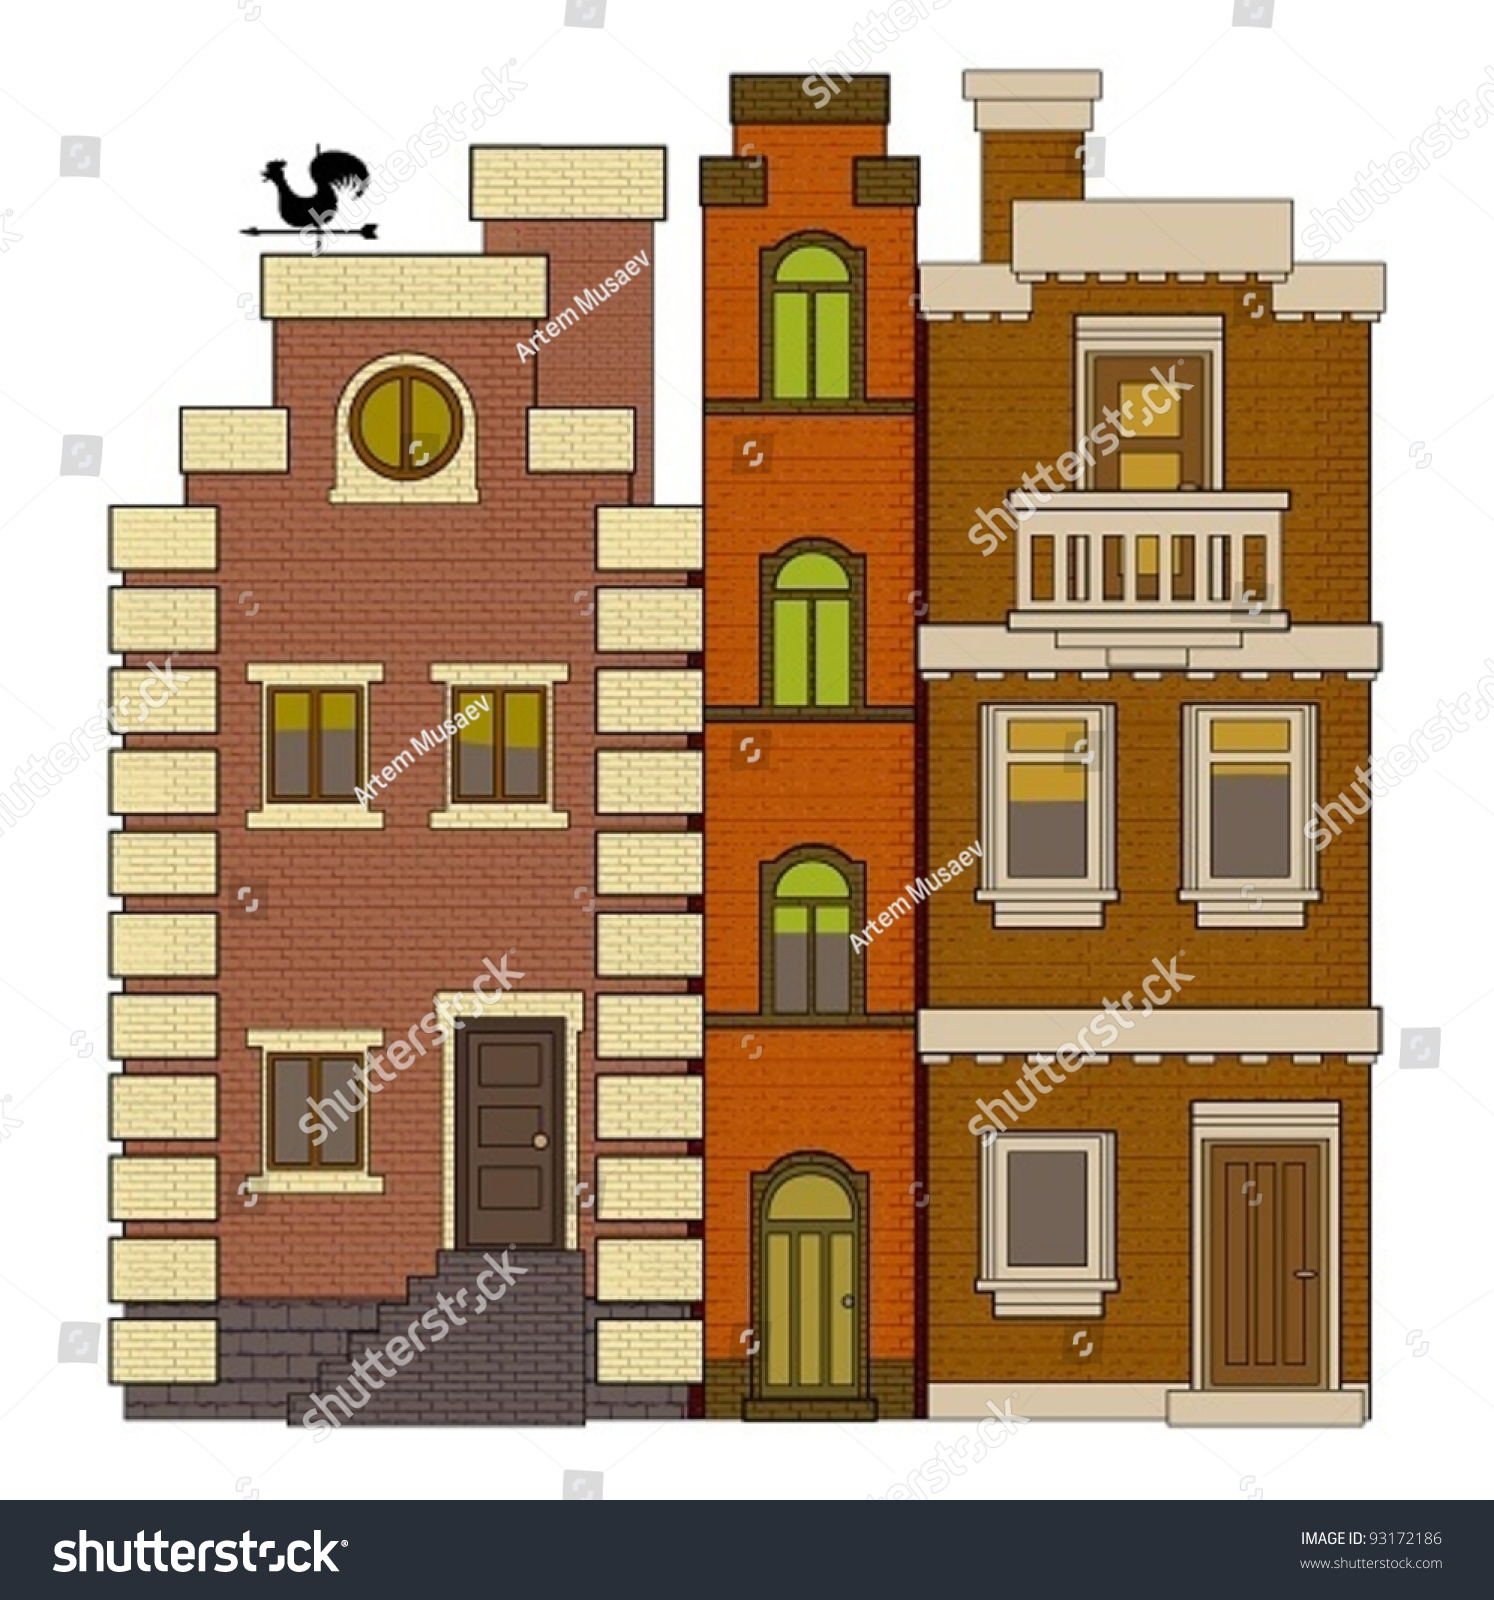 old fashioned houses stock vector 93172186 - shutterstock